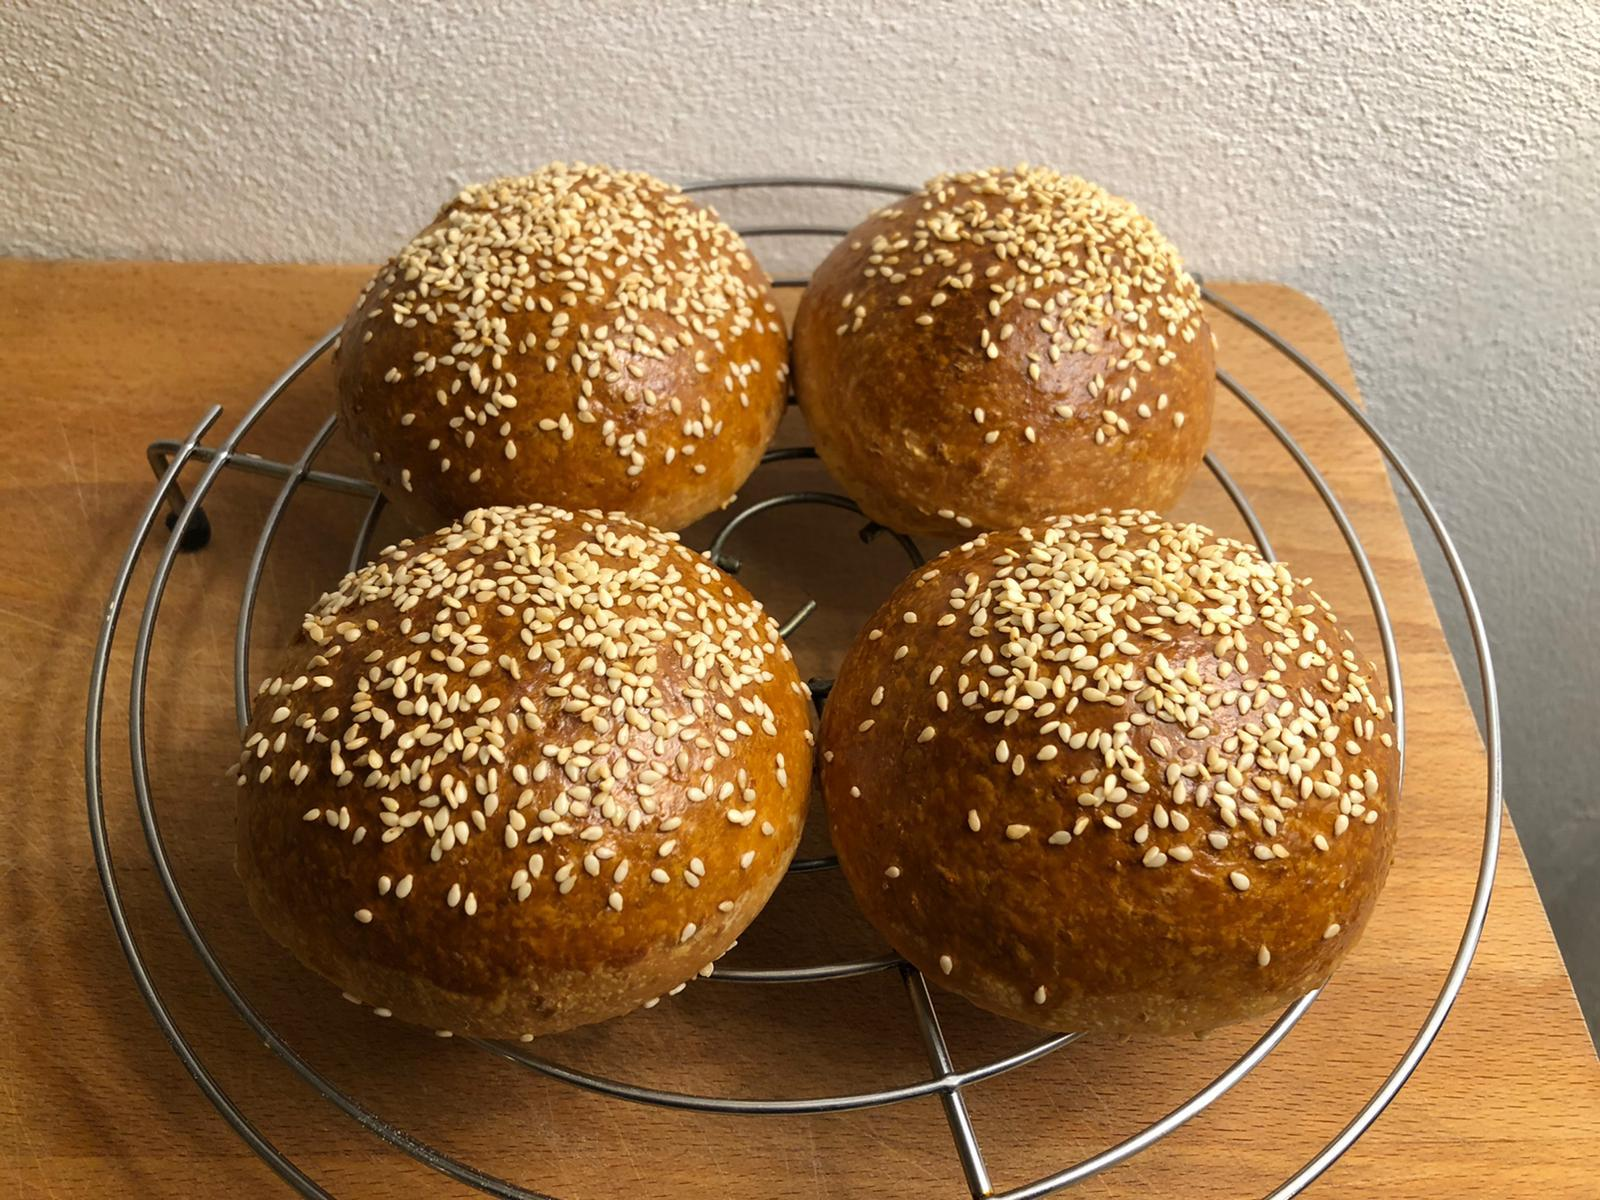 How to make Burger Buns, a recipe by Tom Rees